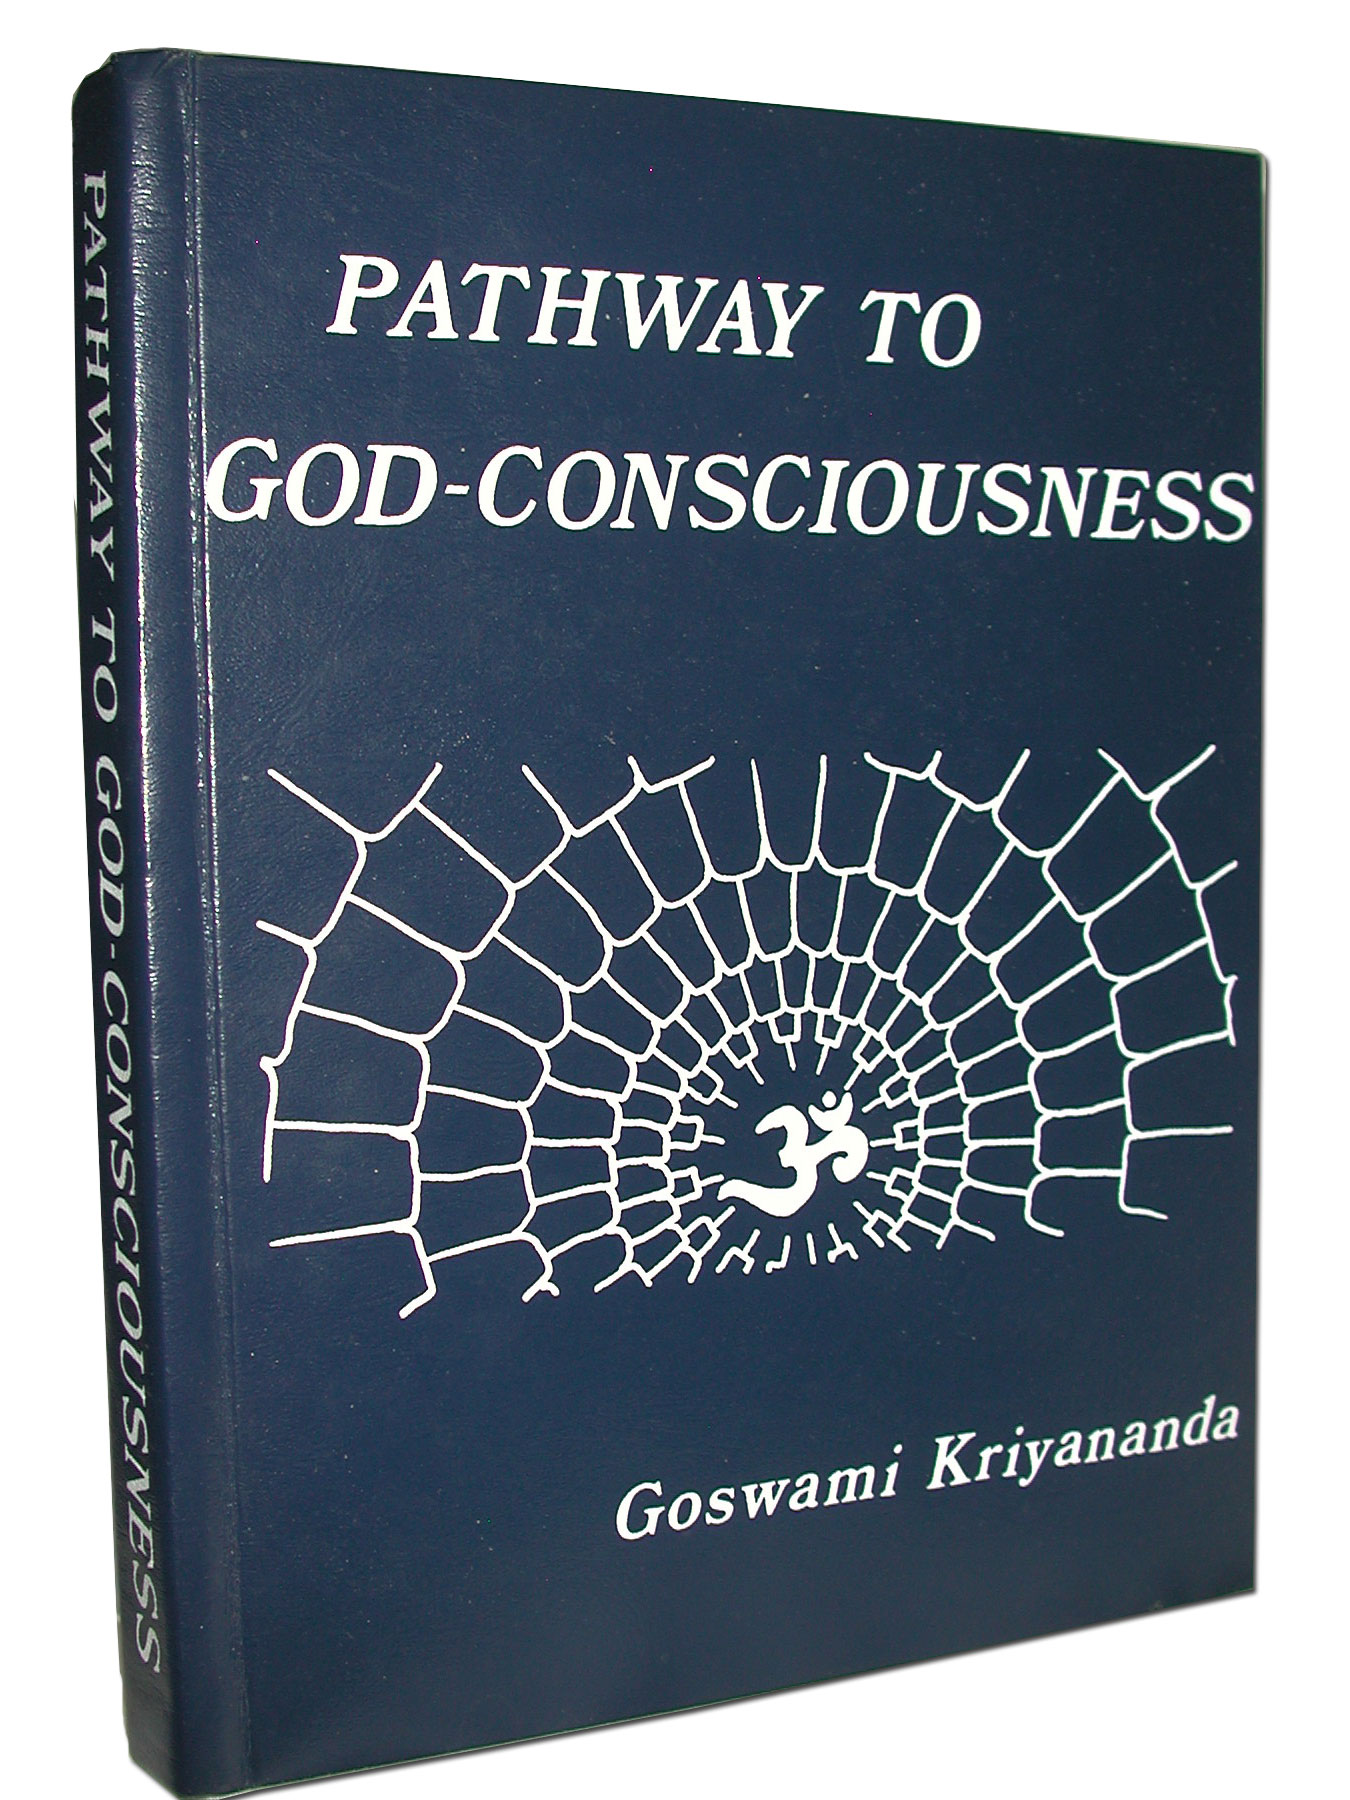 Image for Pathway to God-Consciousness